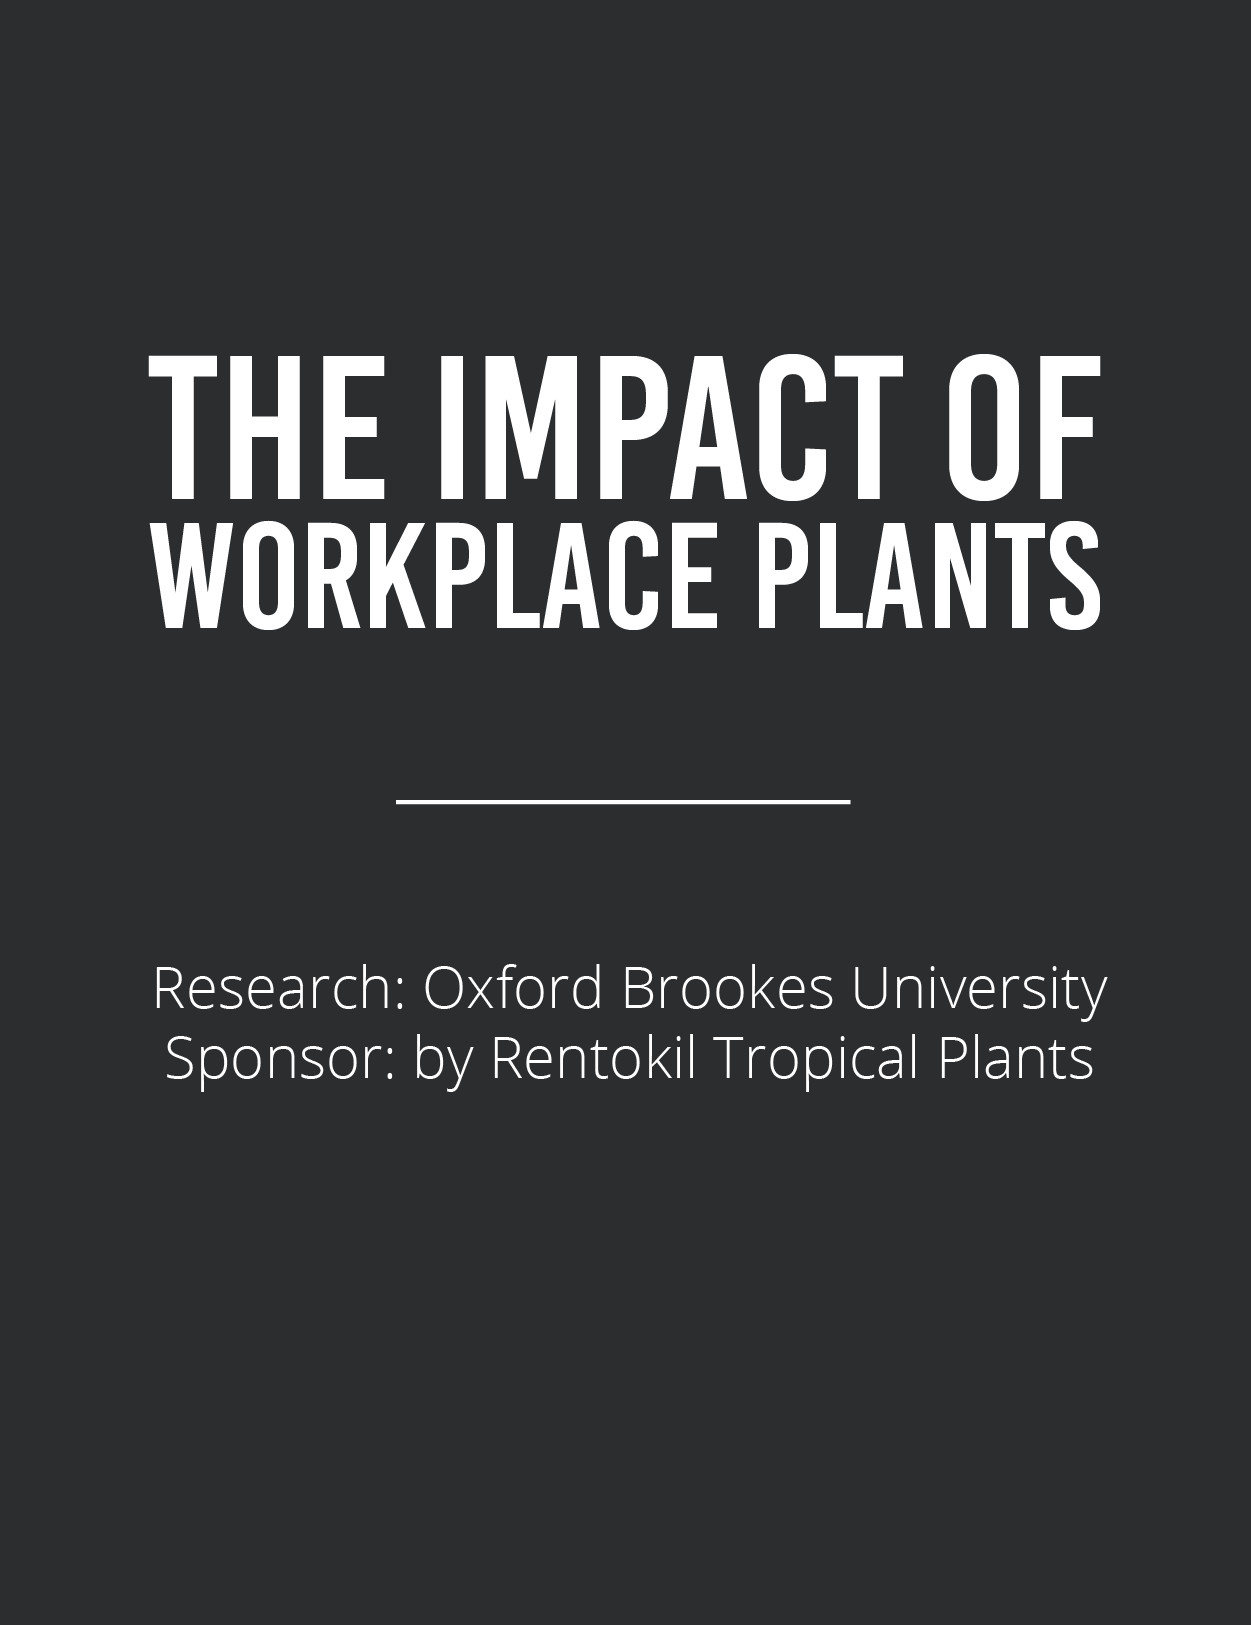 Impact of Workplace Plants